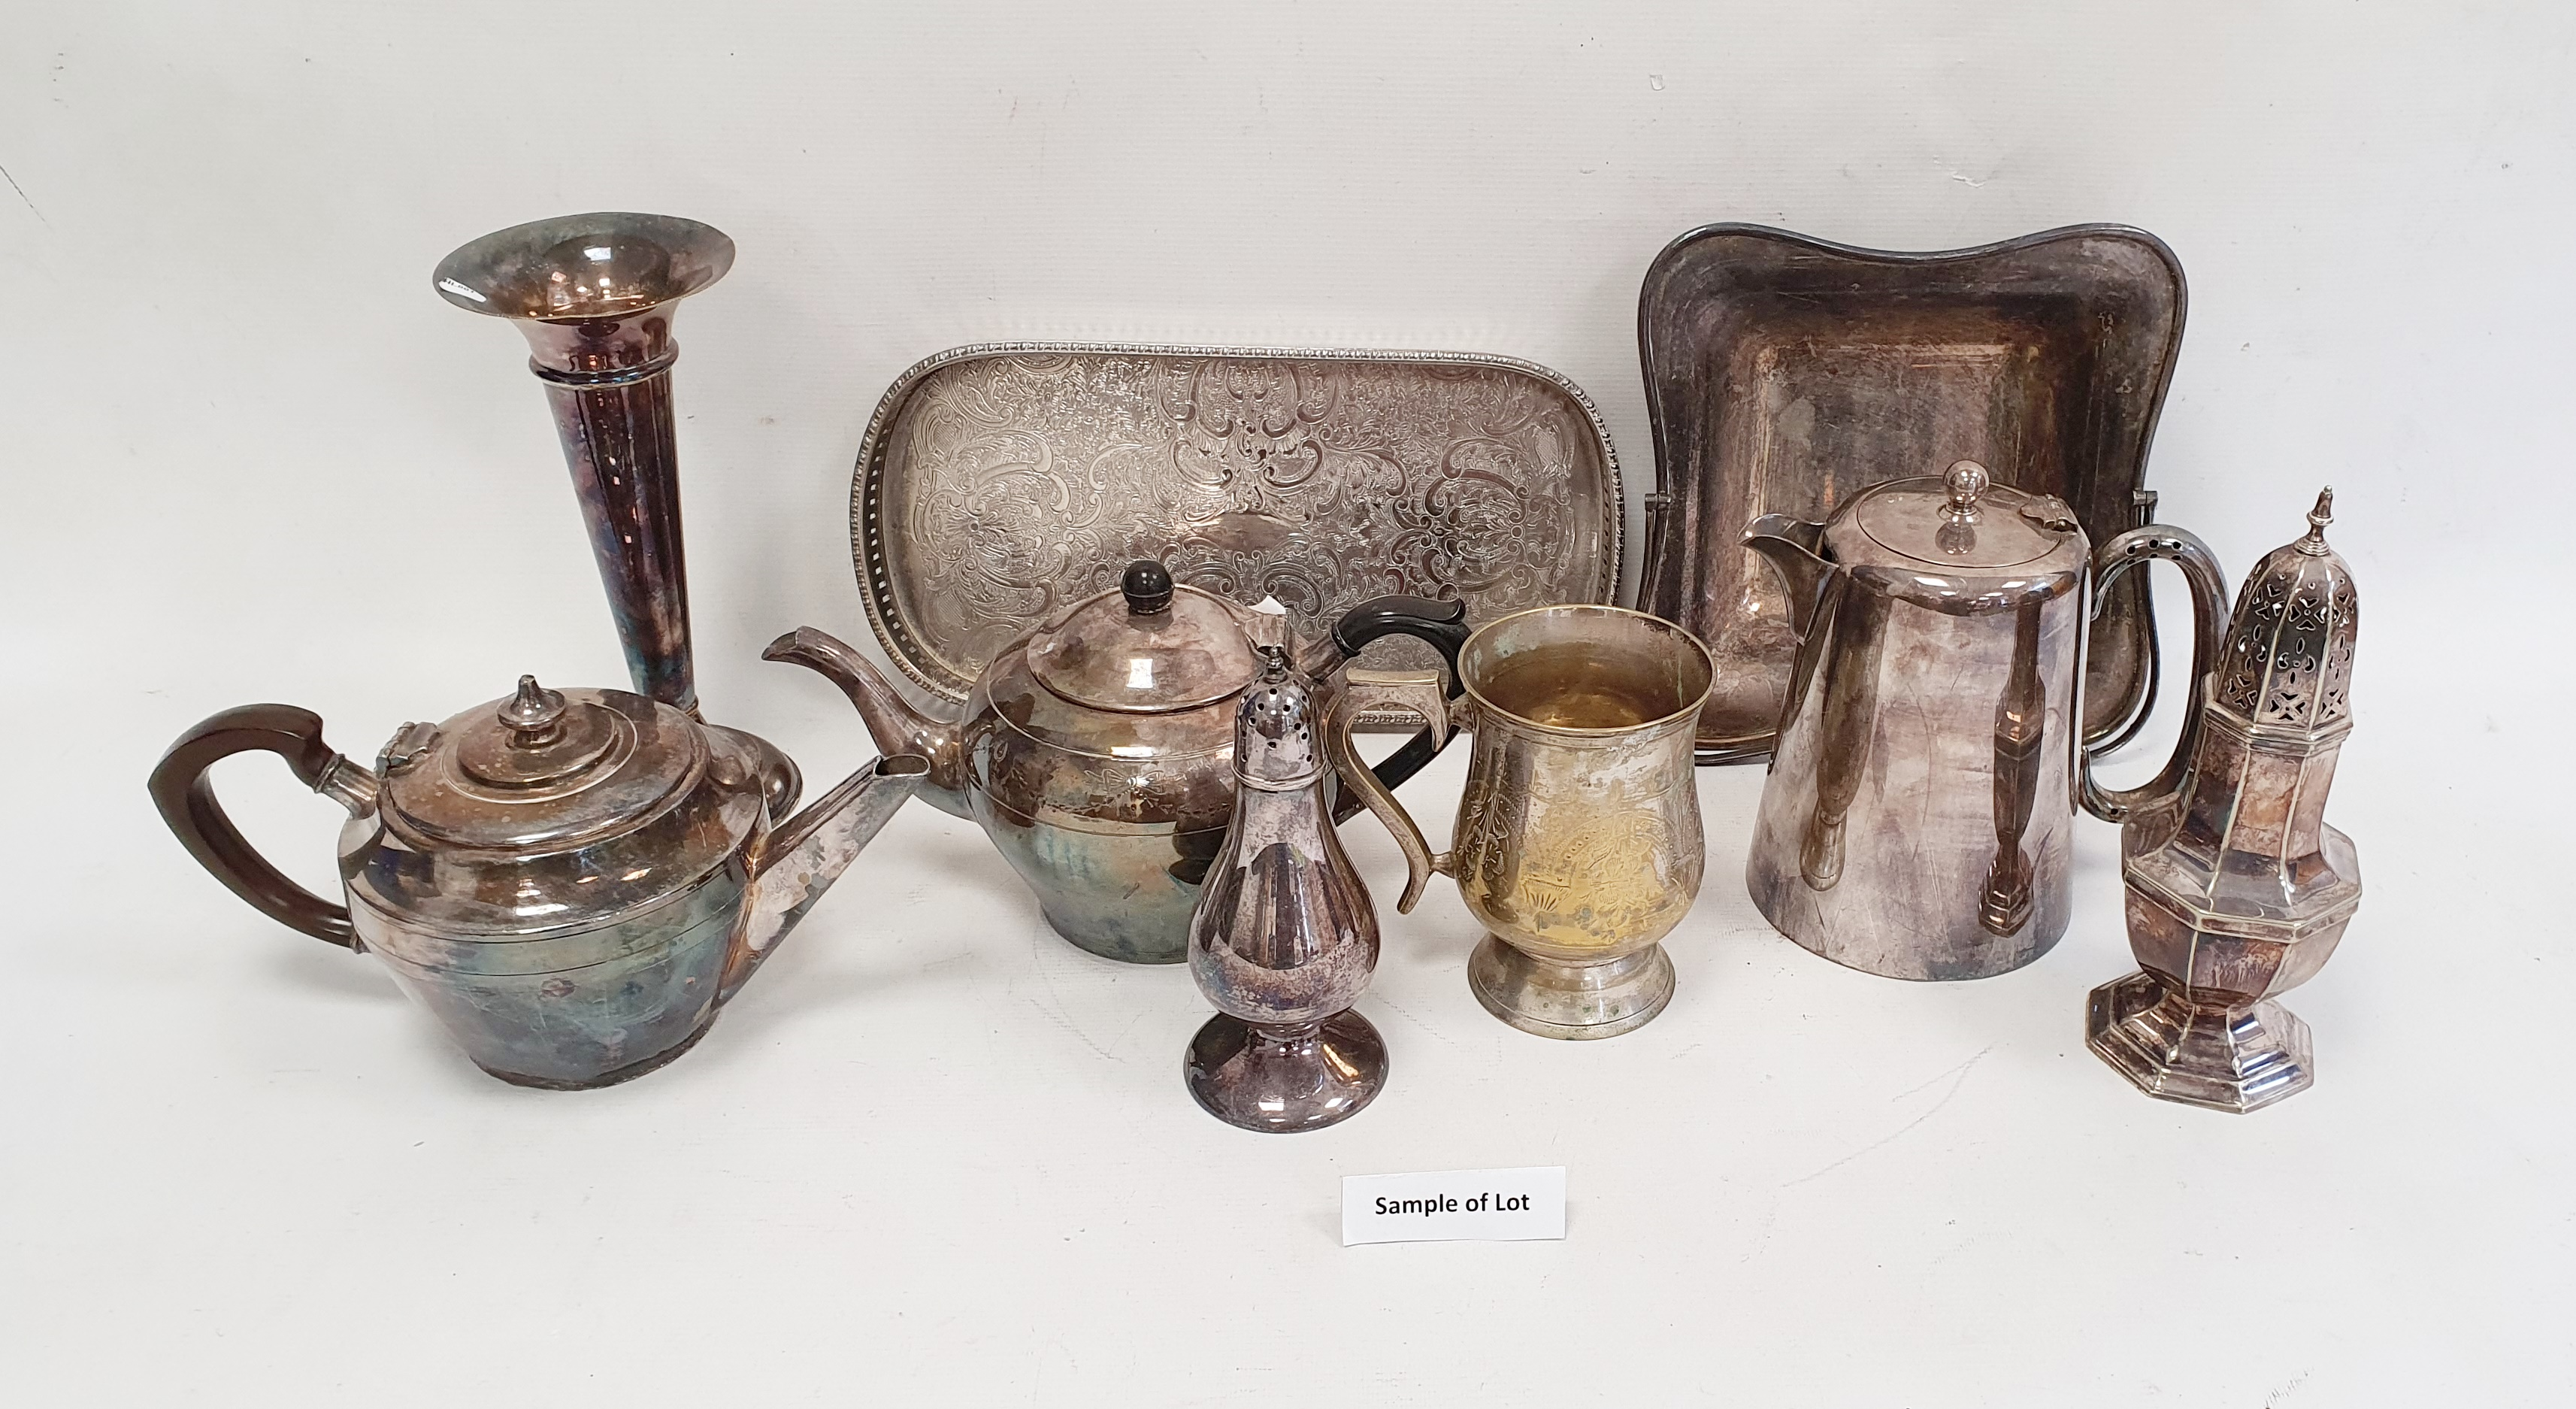 Large quantity of assorted plated ware, teapots, sifters, flatware, etc (2 boxes)